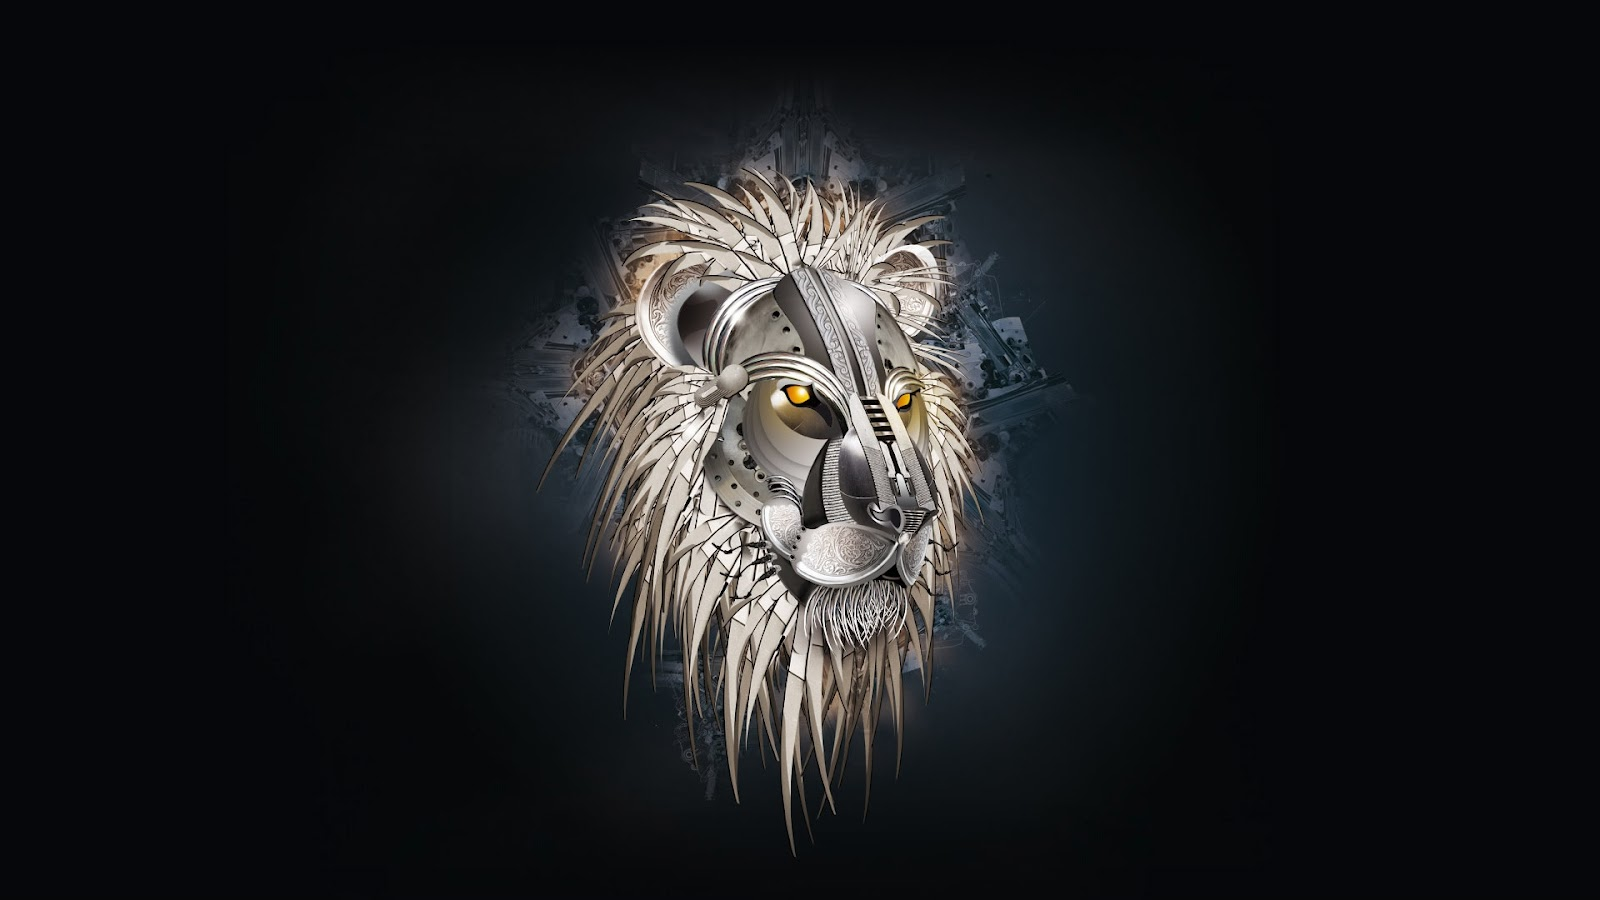 wallpapers beautiful lion wallpapers desktop wallpapers cell phone 1600x900